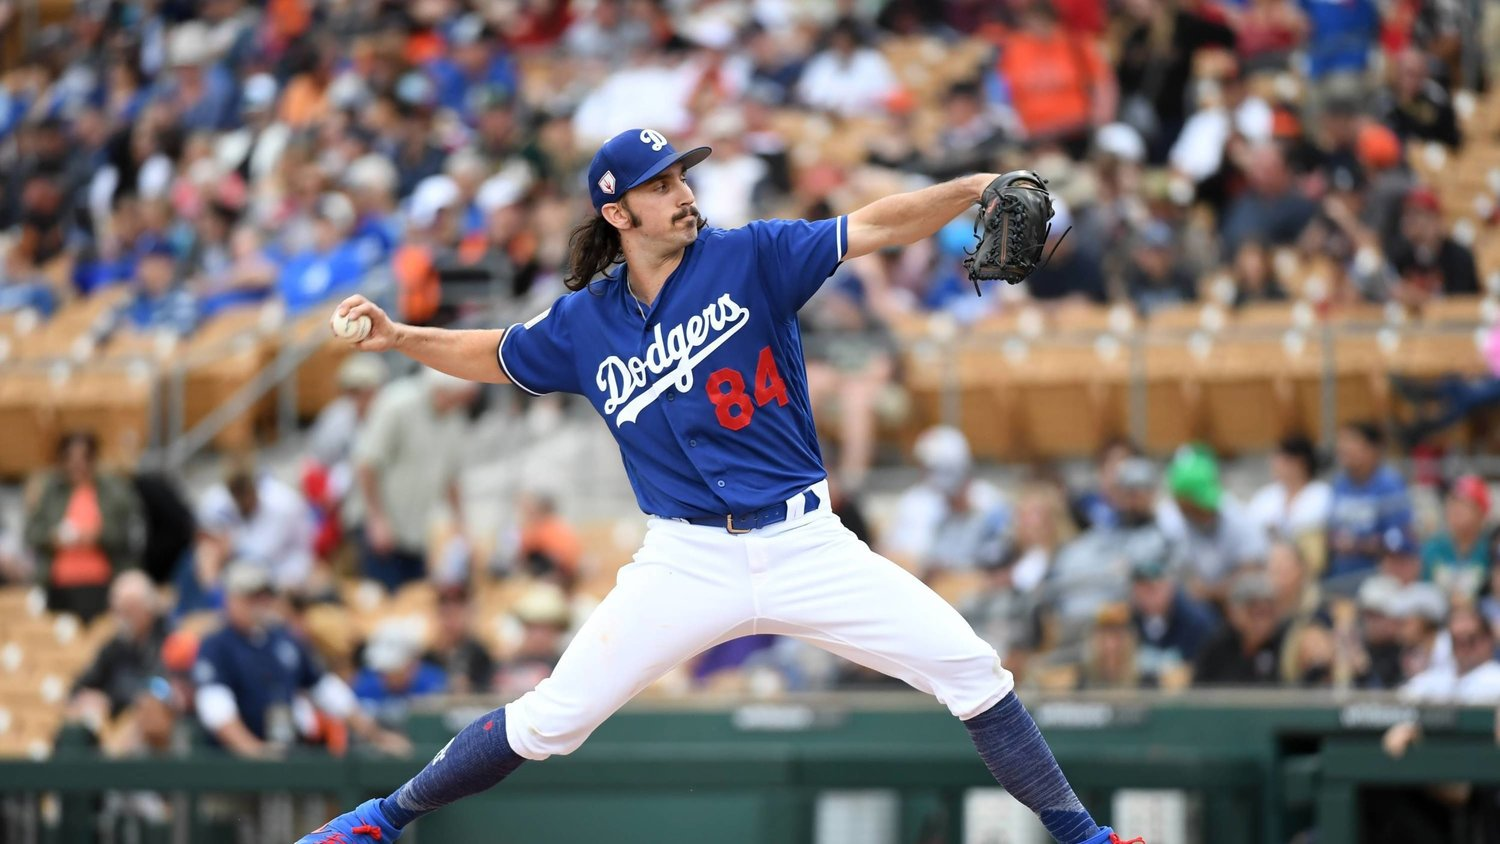 Best Fantasy Baseball Prospects 2020 Fantasy Draft: Potential Top 100 Prospects for 2020 — Prospects Live